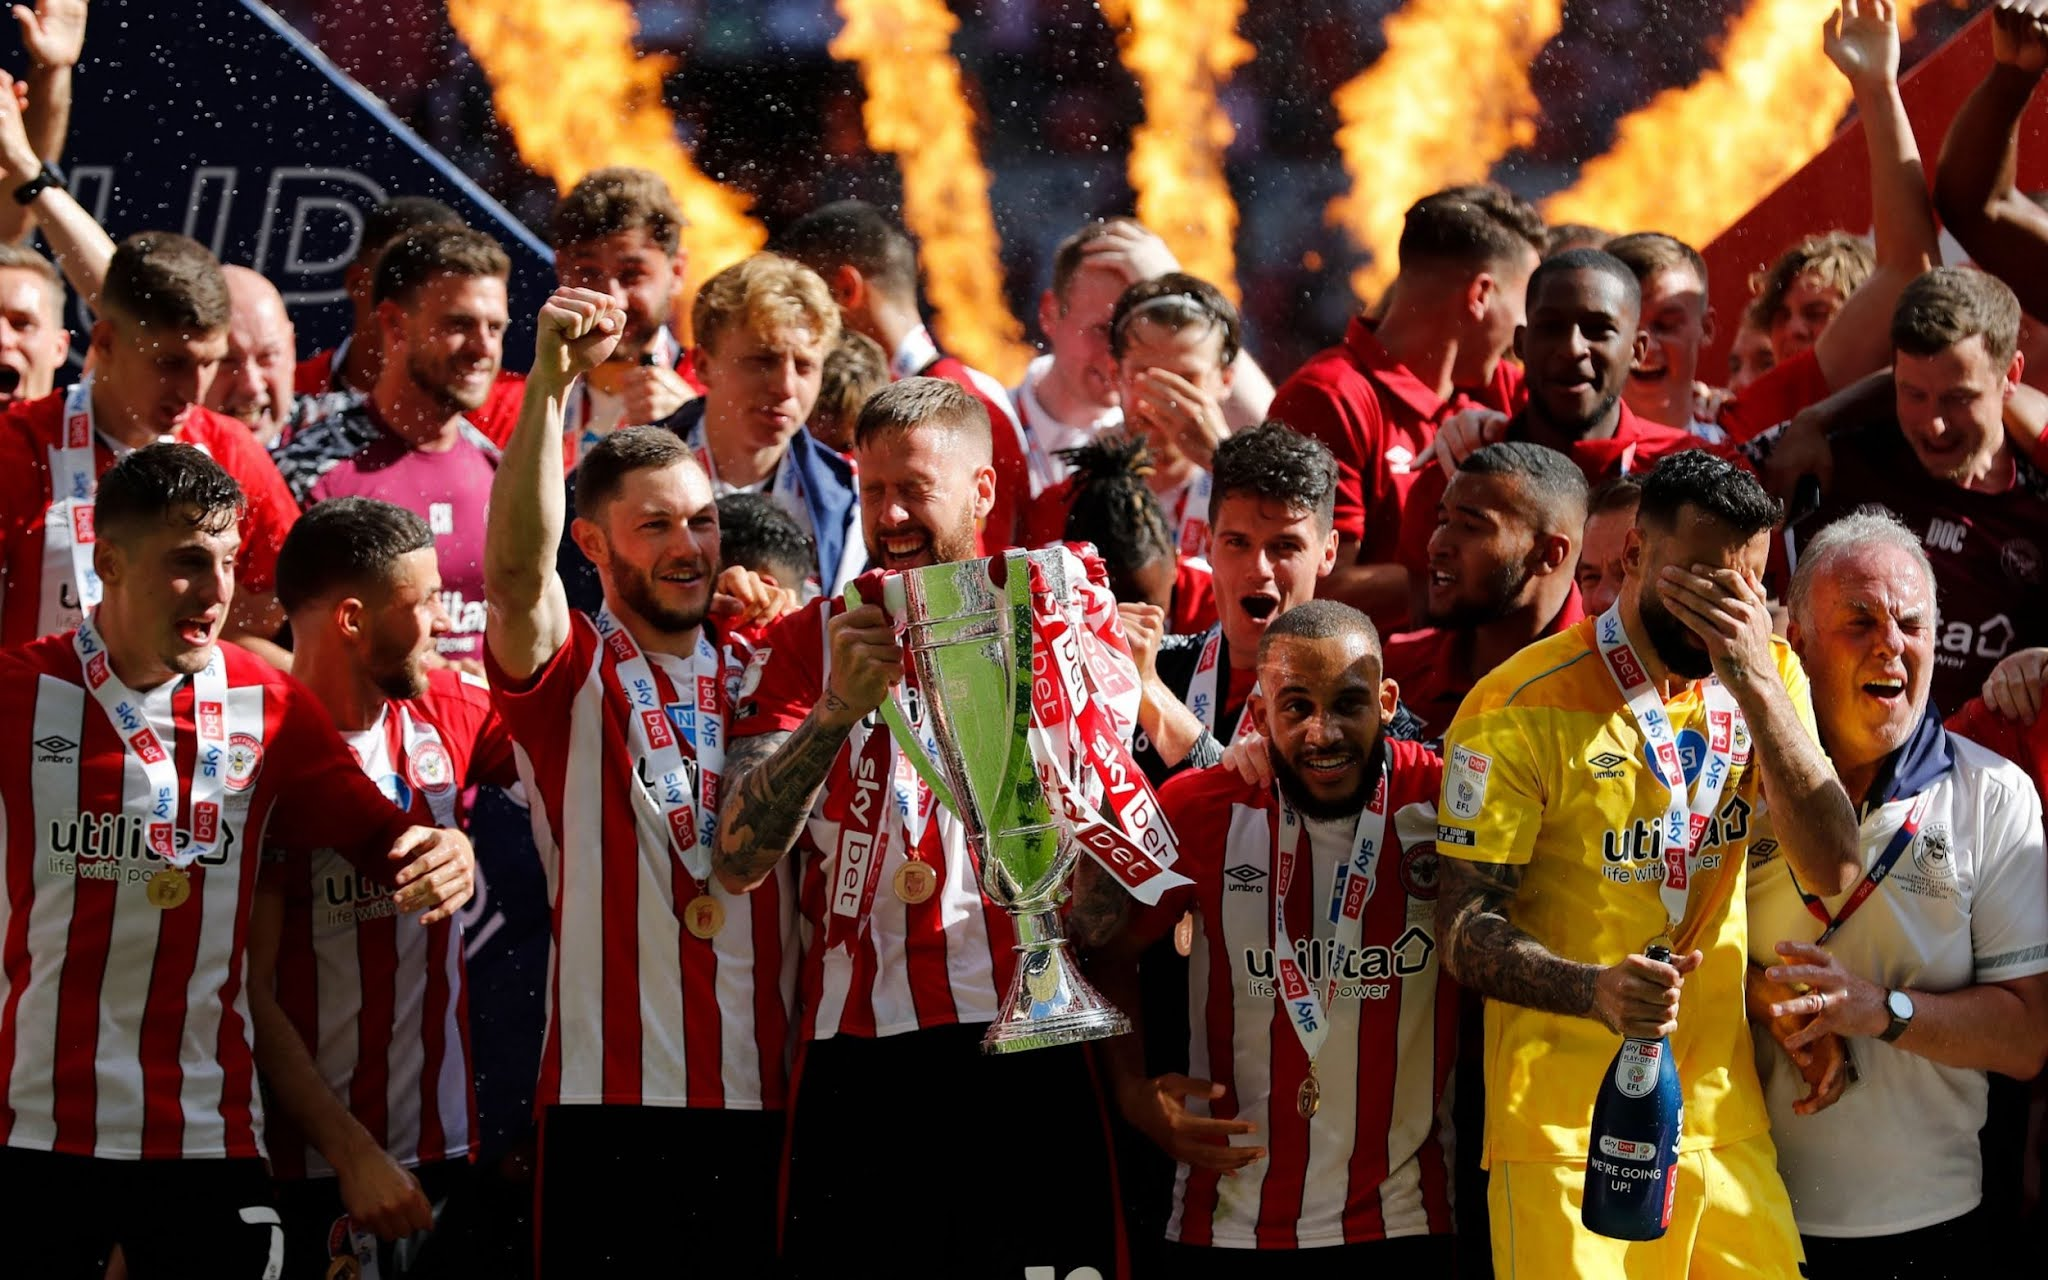 Brentford celebrate promotion to the top-flight after 71 years